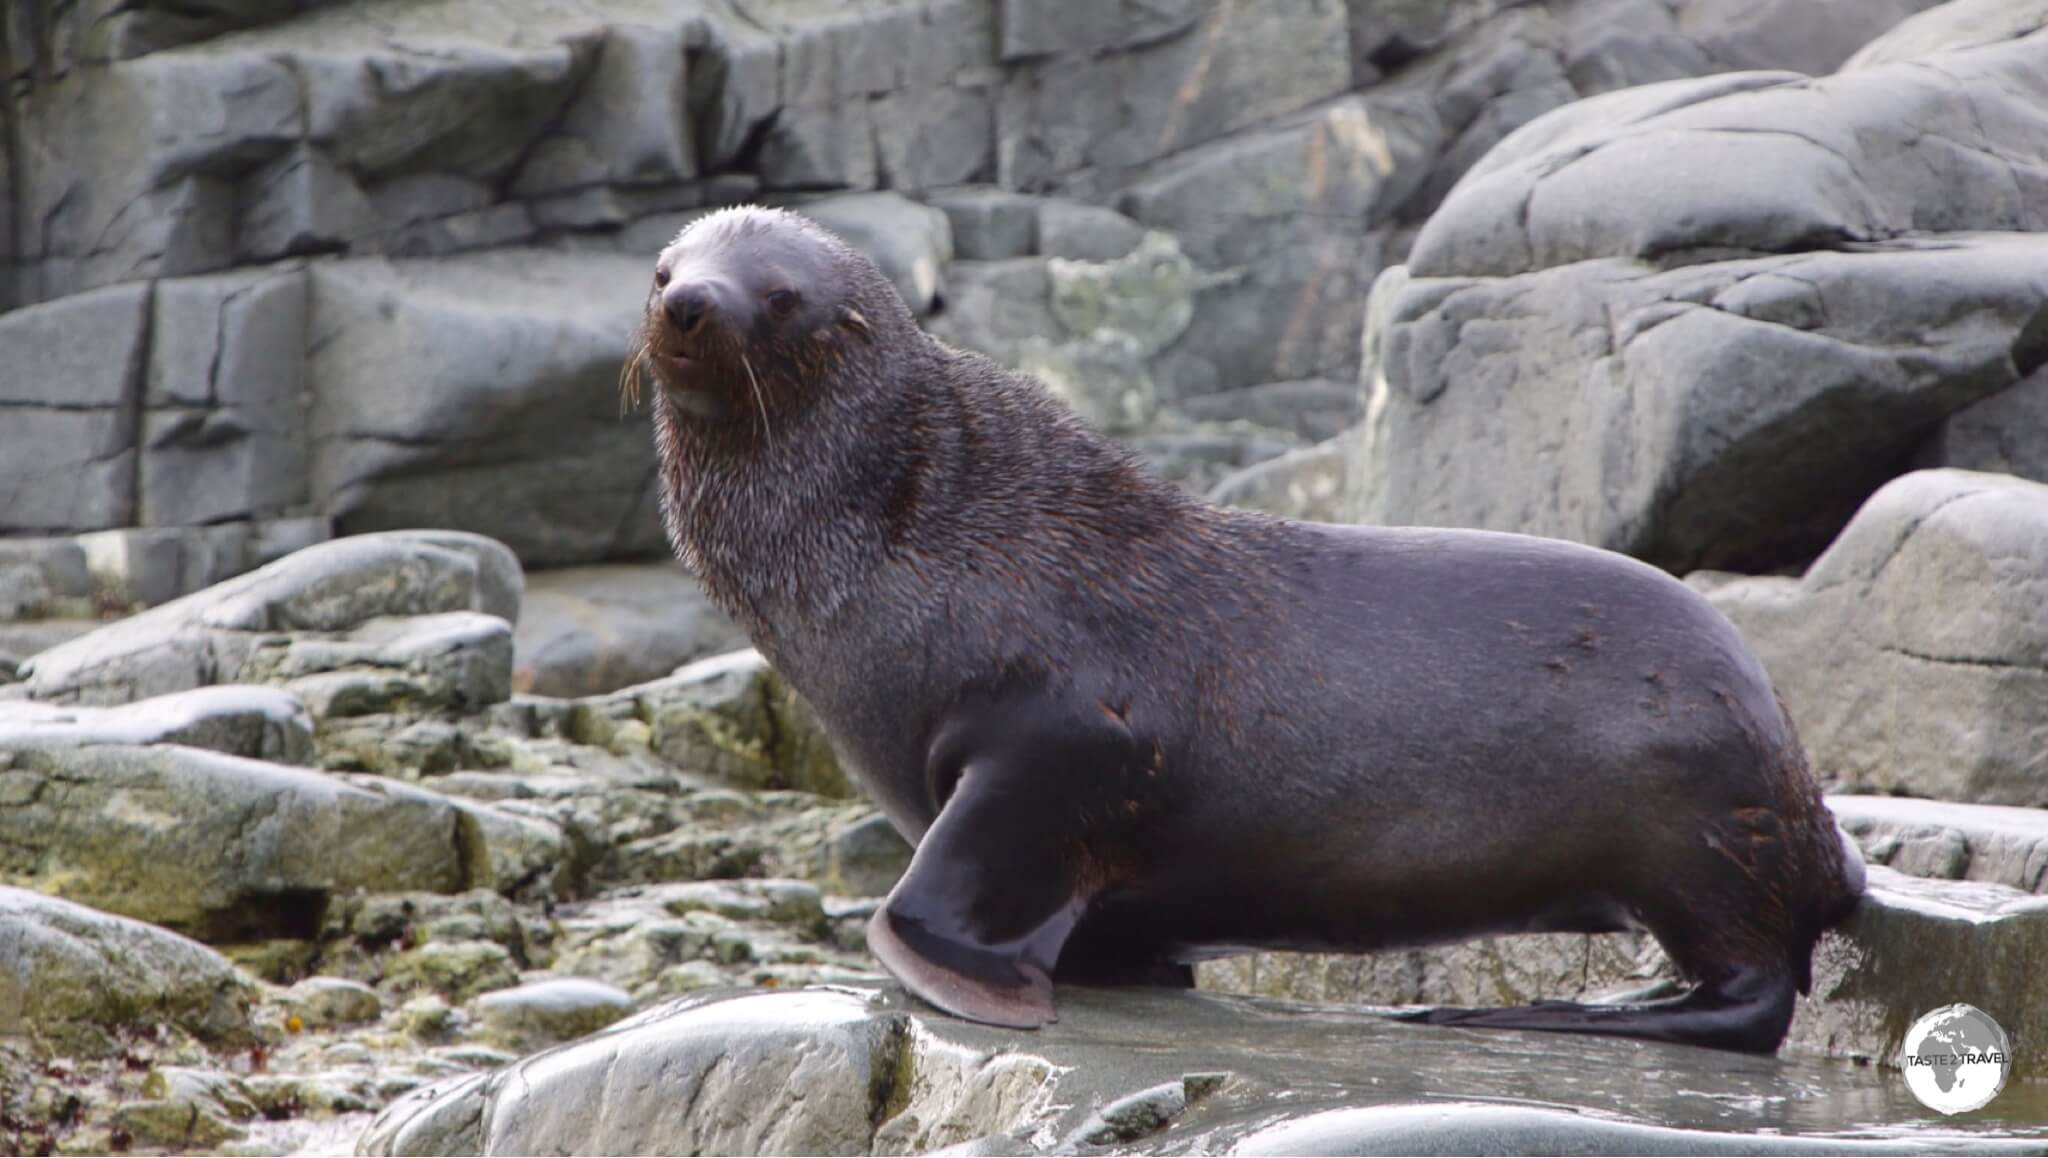 Almost hunted to extinction, the Fur Seal can be seen performing at zoos and marine parks around the world.